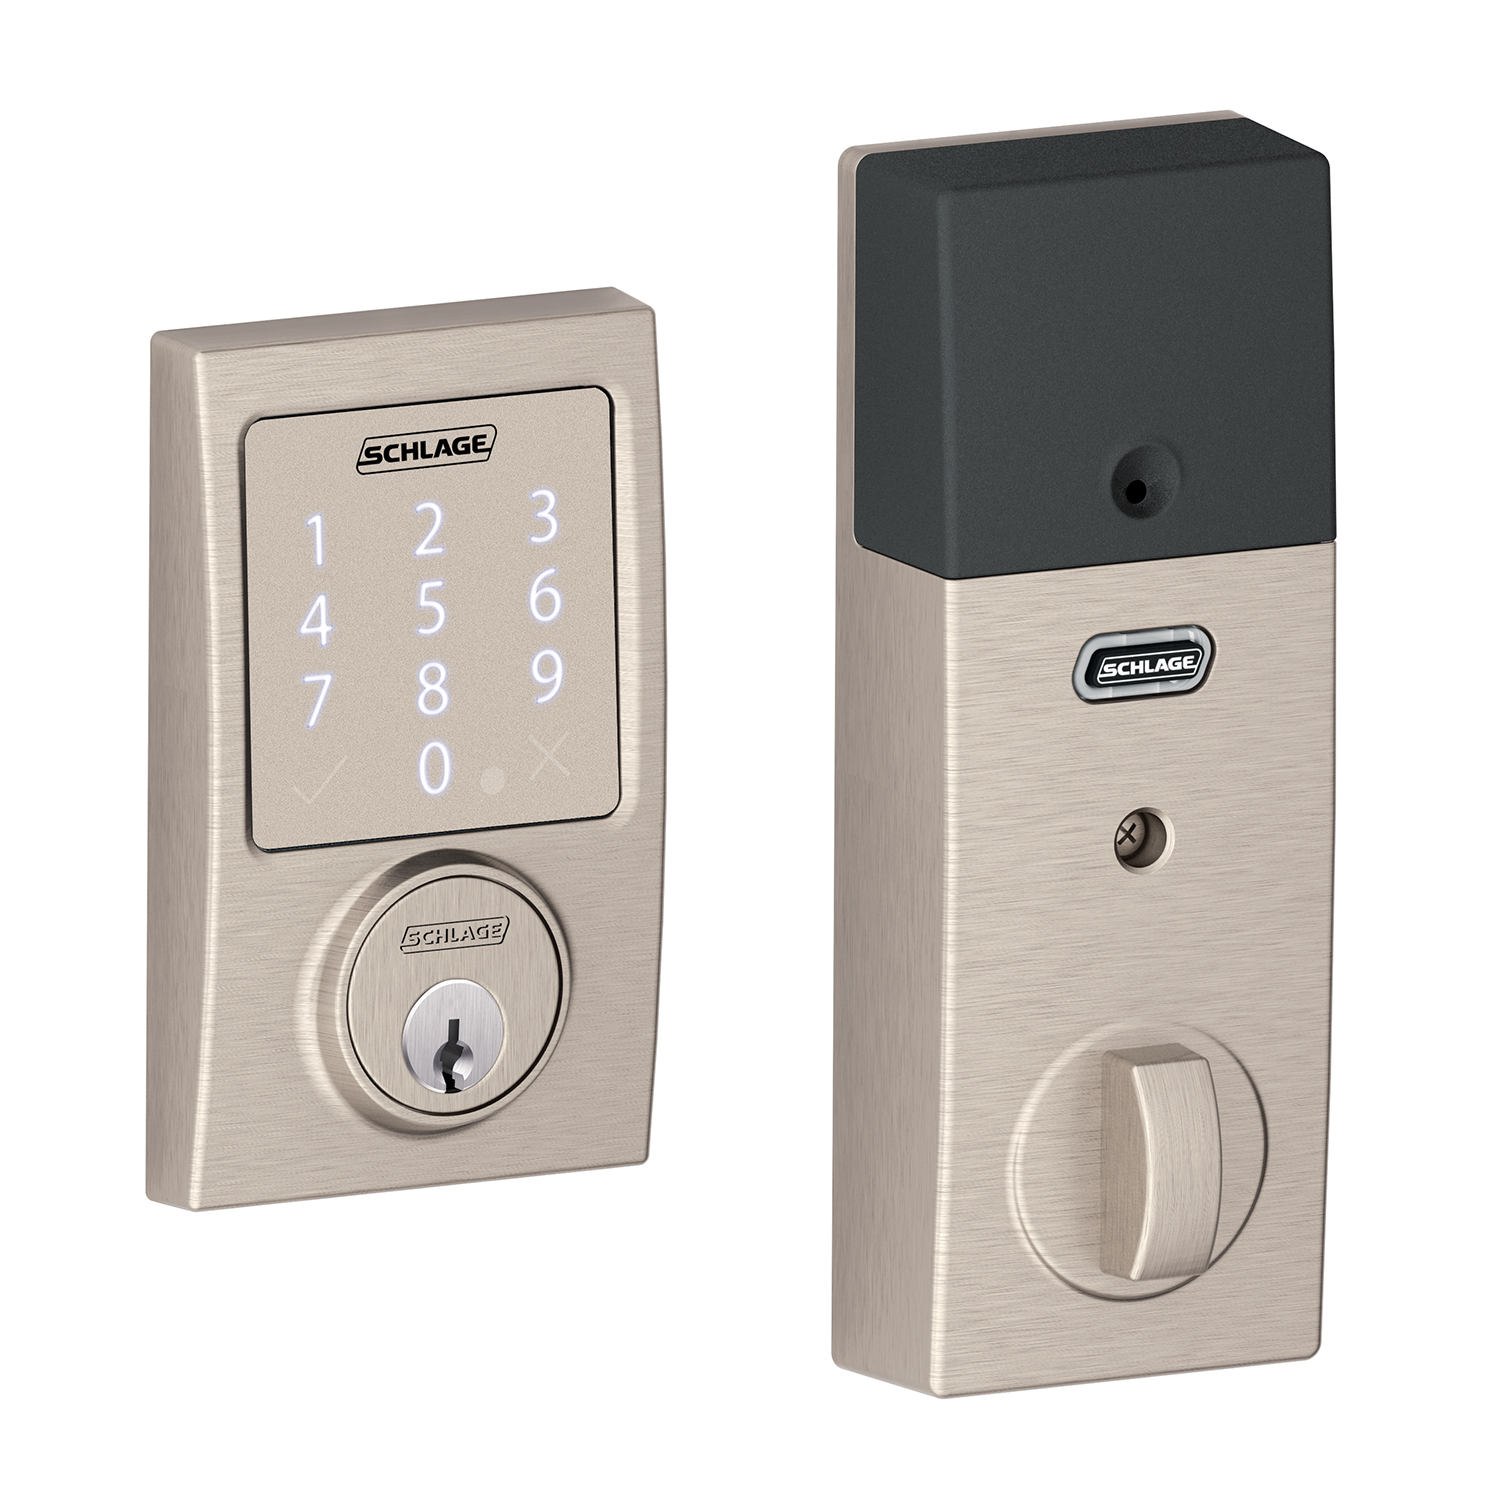 Schlage BE479AACEN619 Satin Nickel Century Sense Touch Screen Electronic Deadbolt With Build In Alarm